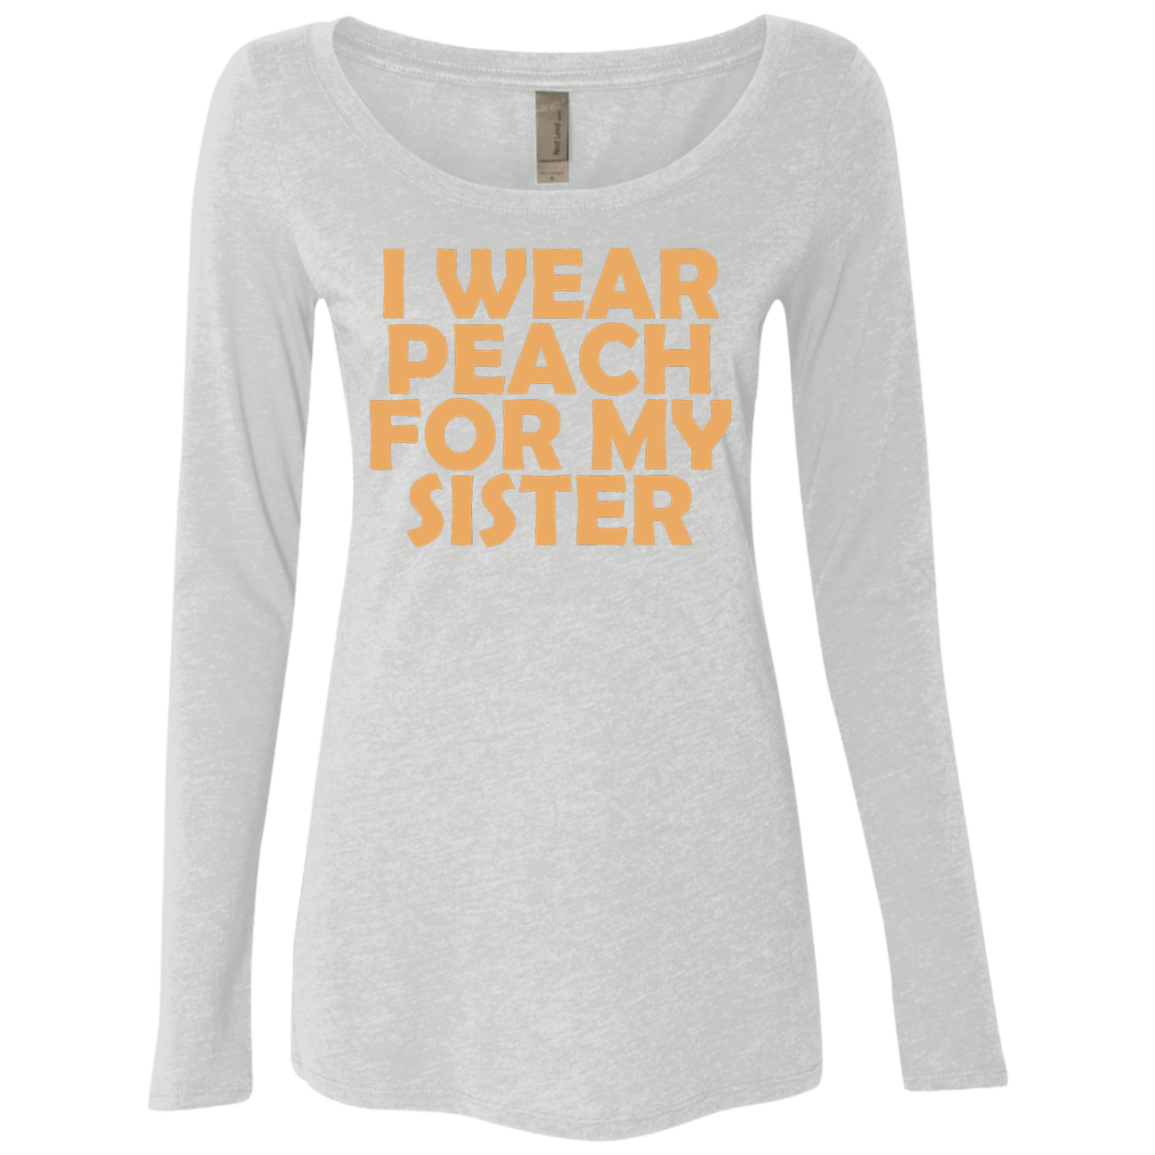 I Wear Peach For My Sister Women's Long Sleeve Tee